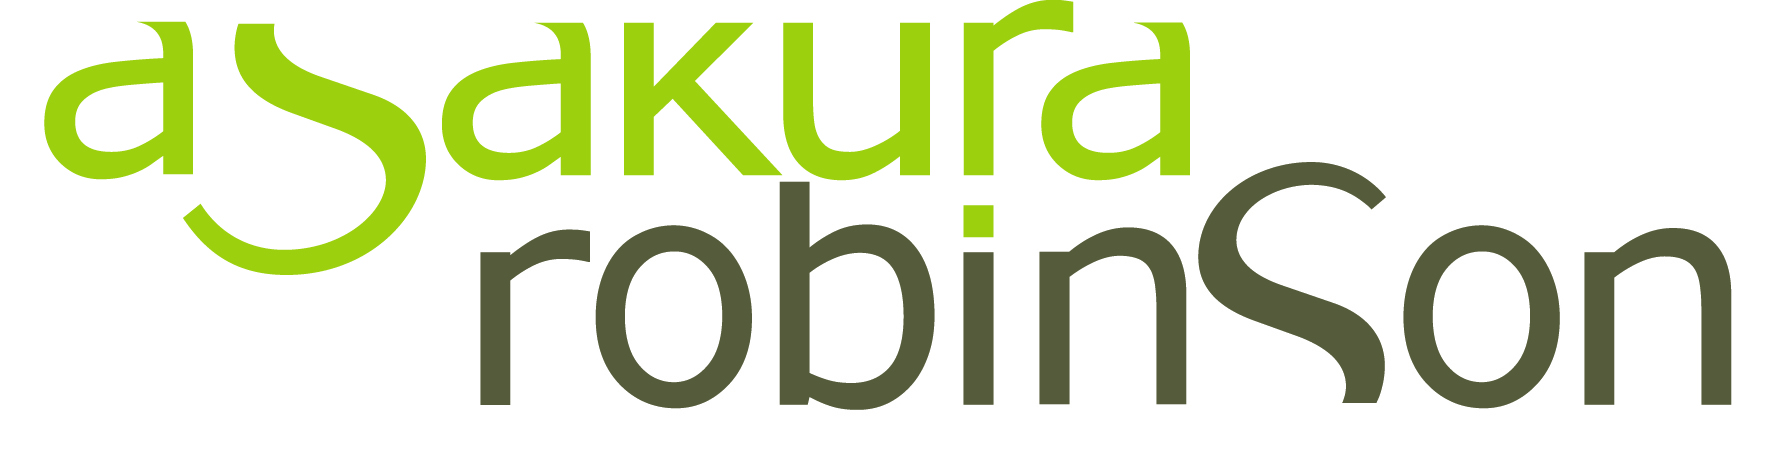 asakura_robinson_logo_simple.jpg